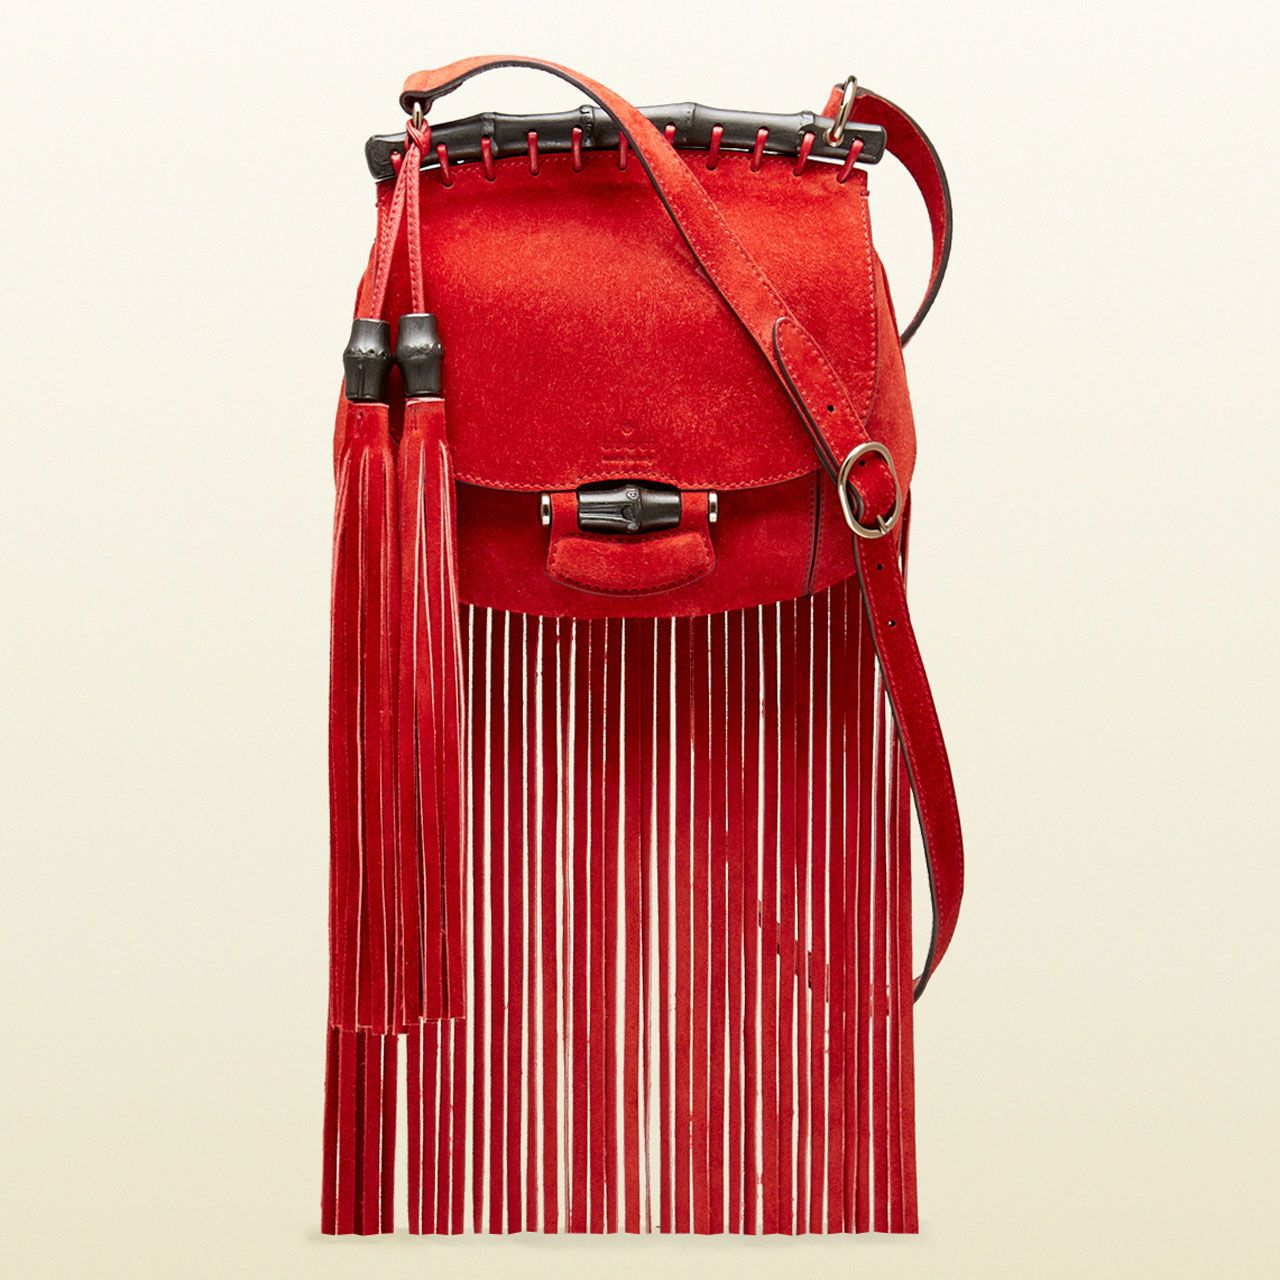 The SS 2014 Gucci Nouveau Fringe Suede Shoulder Bag  58906b07002